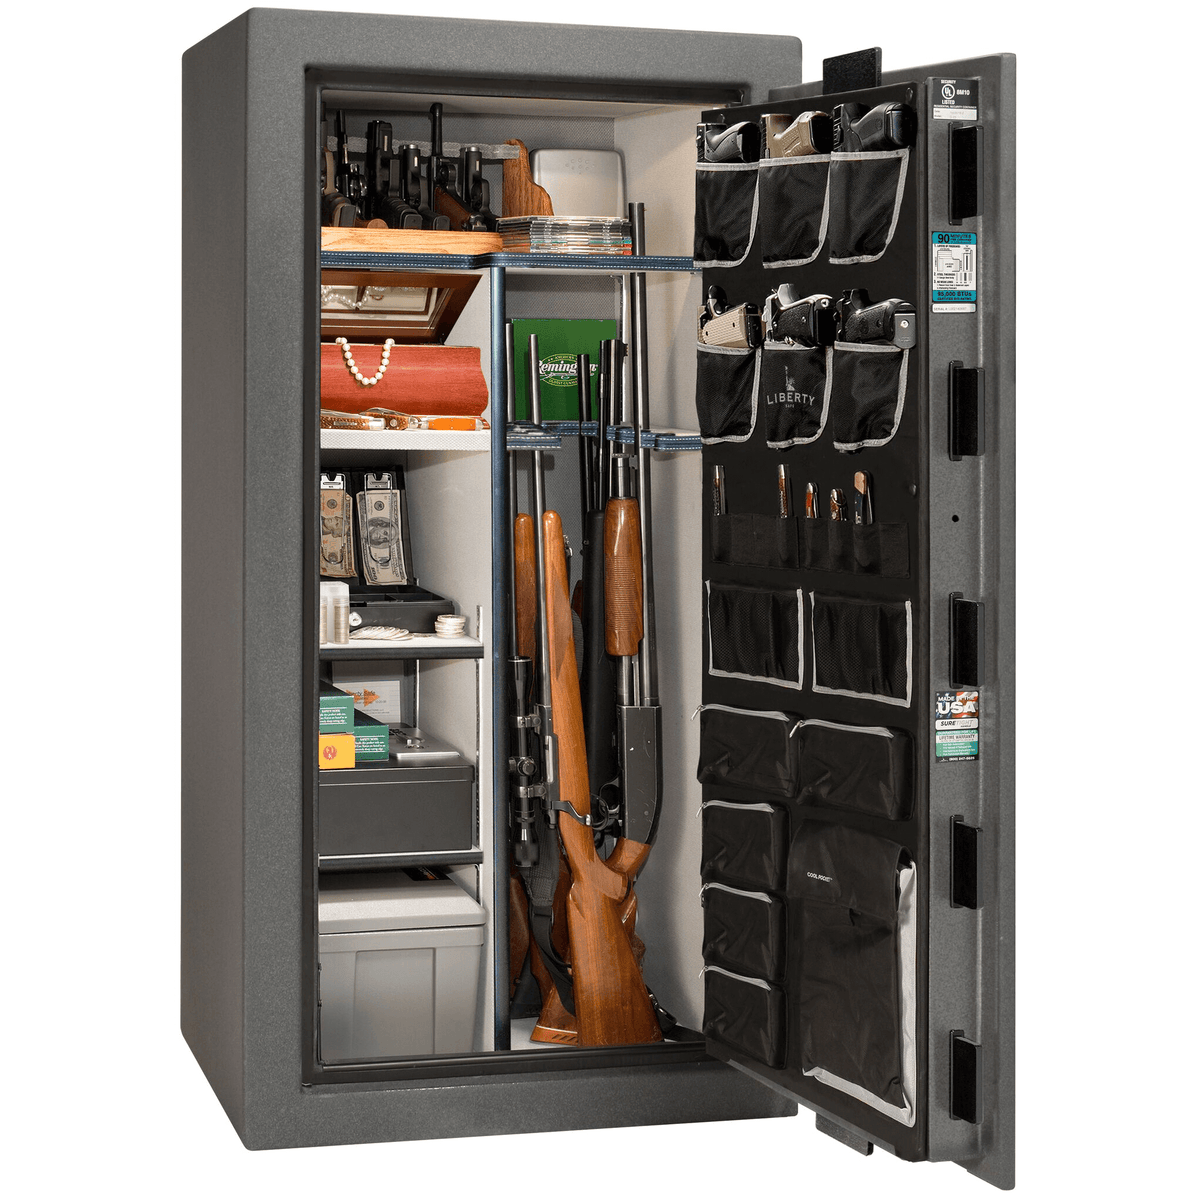 "Lincoln Series | Level 5 Security | 90 Minute Fire Protection | Bronze Textured | Electronic Lock | 40 | Dimensions: 66.5""(H) x 36""(W) x 32""(D)"